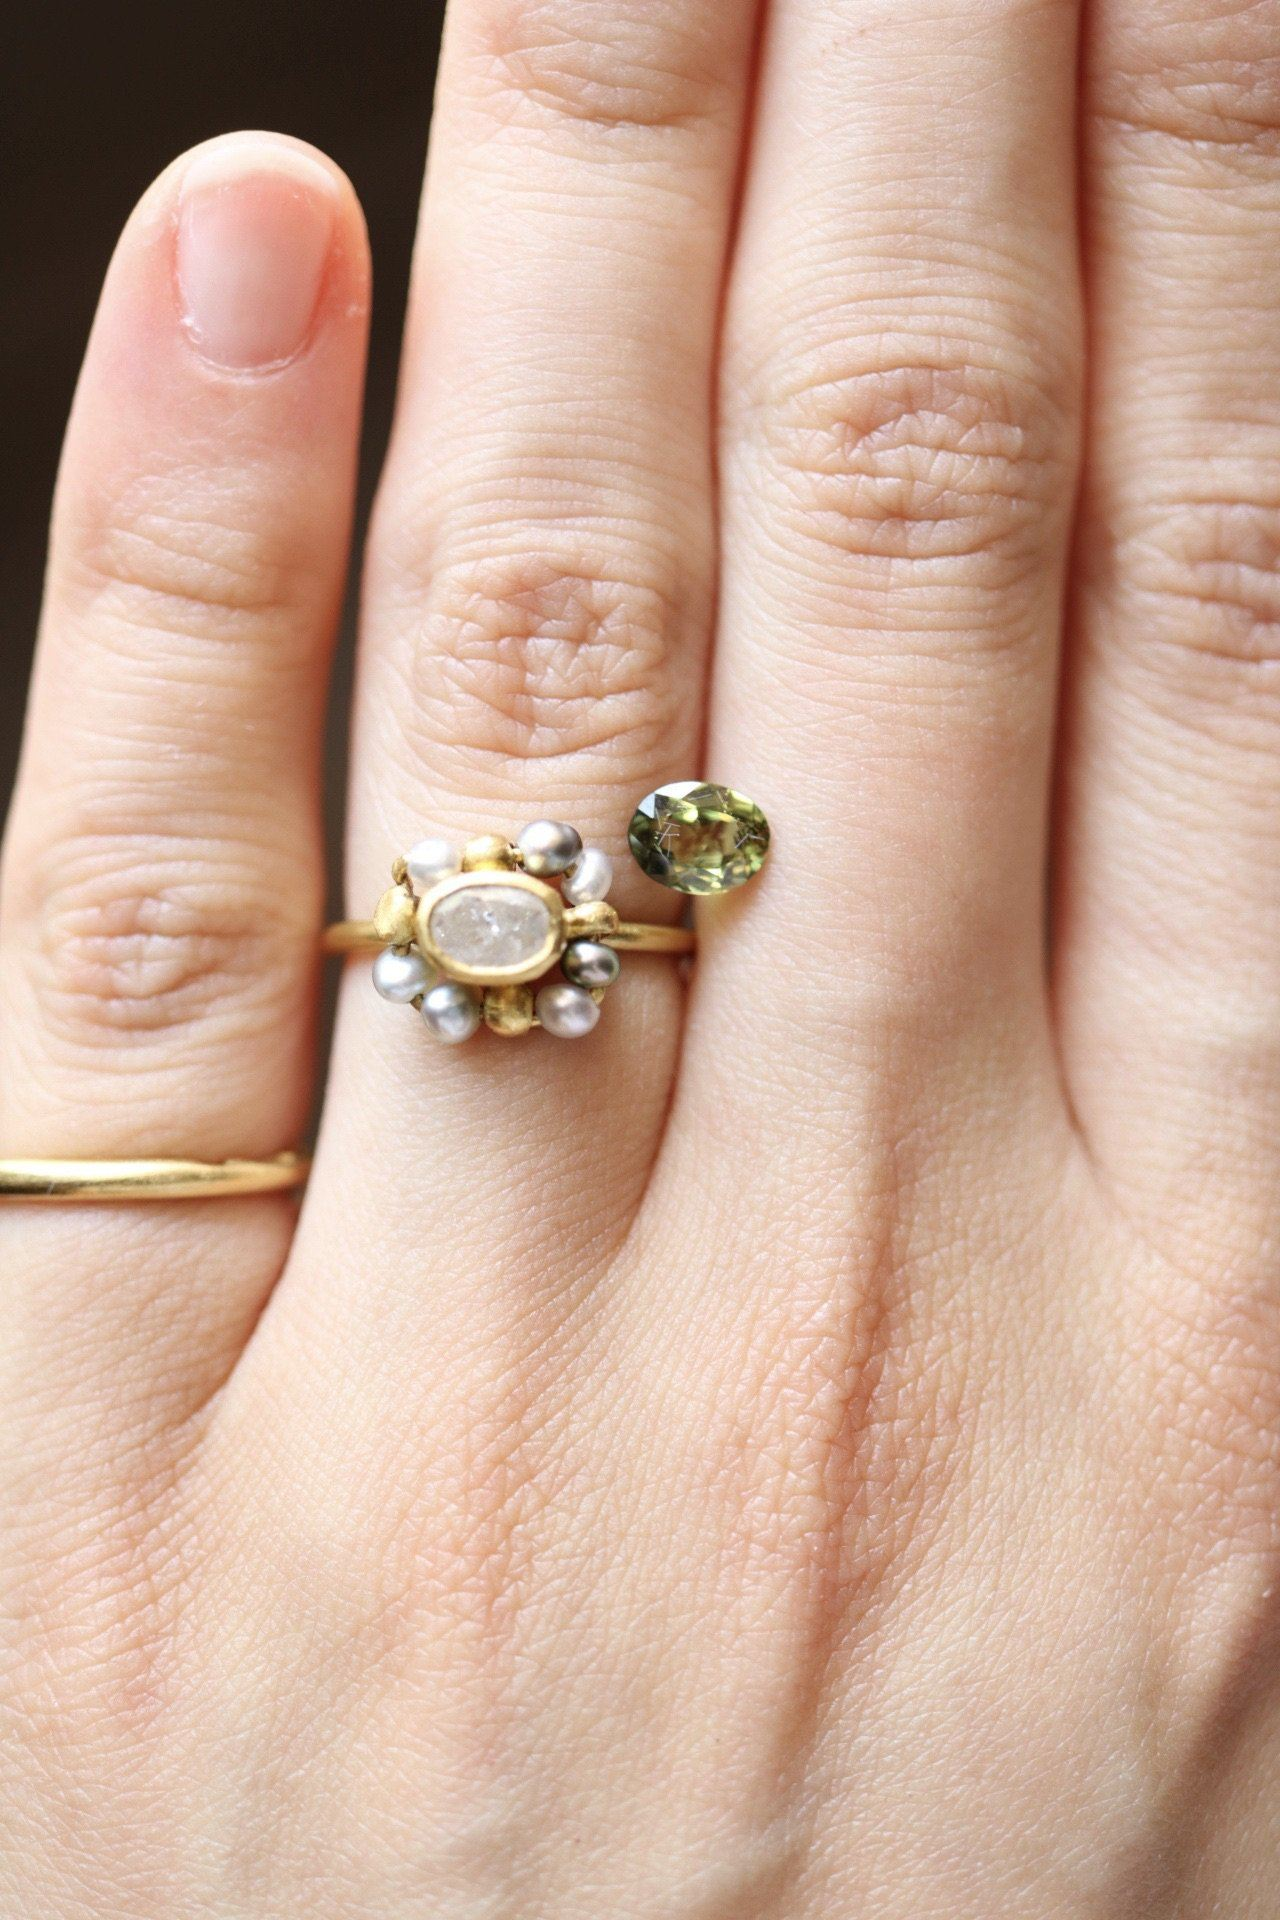 Anello Bizantino <br /> esemplare N.1 con zaffiro dal Central Queensland <br /> Oro Fairtrade 22k